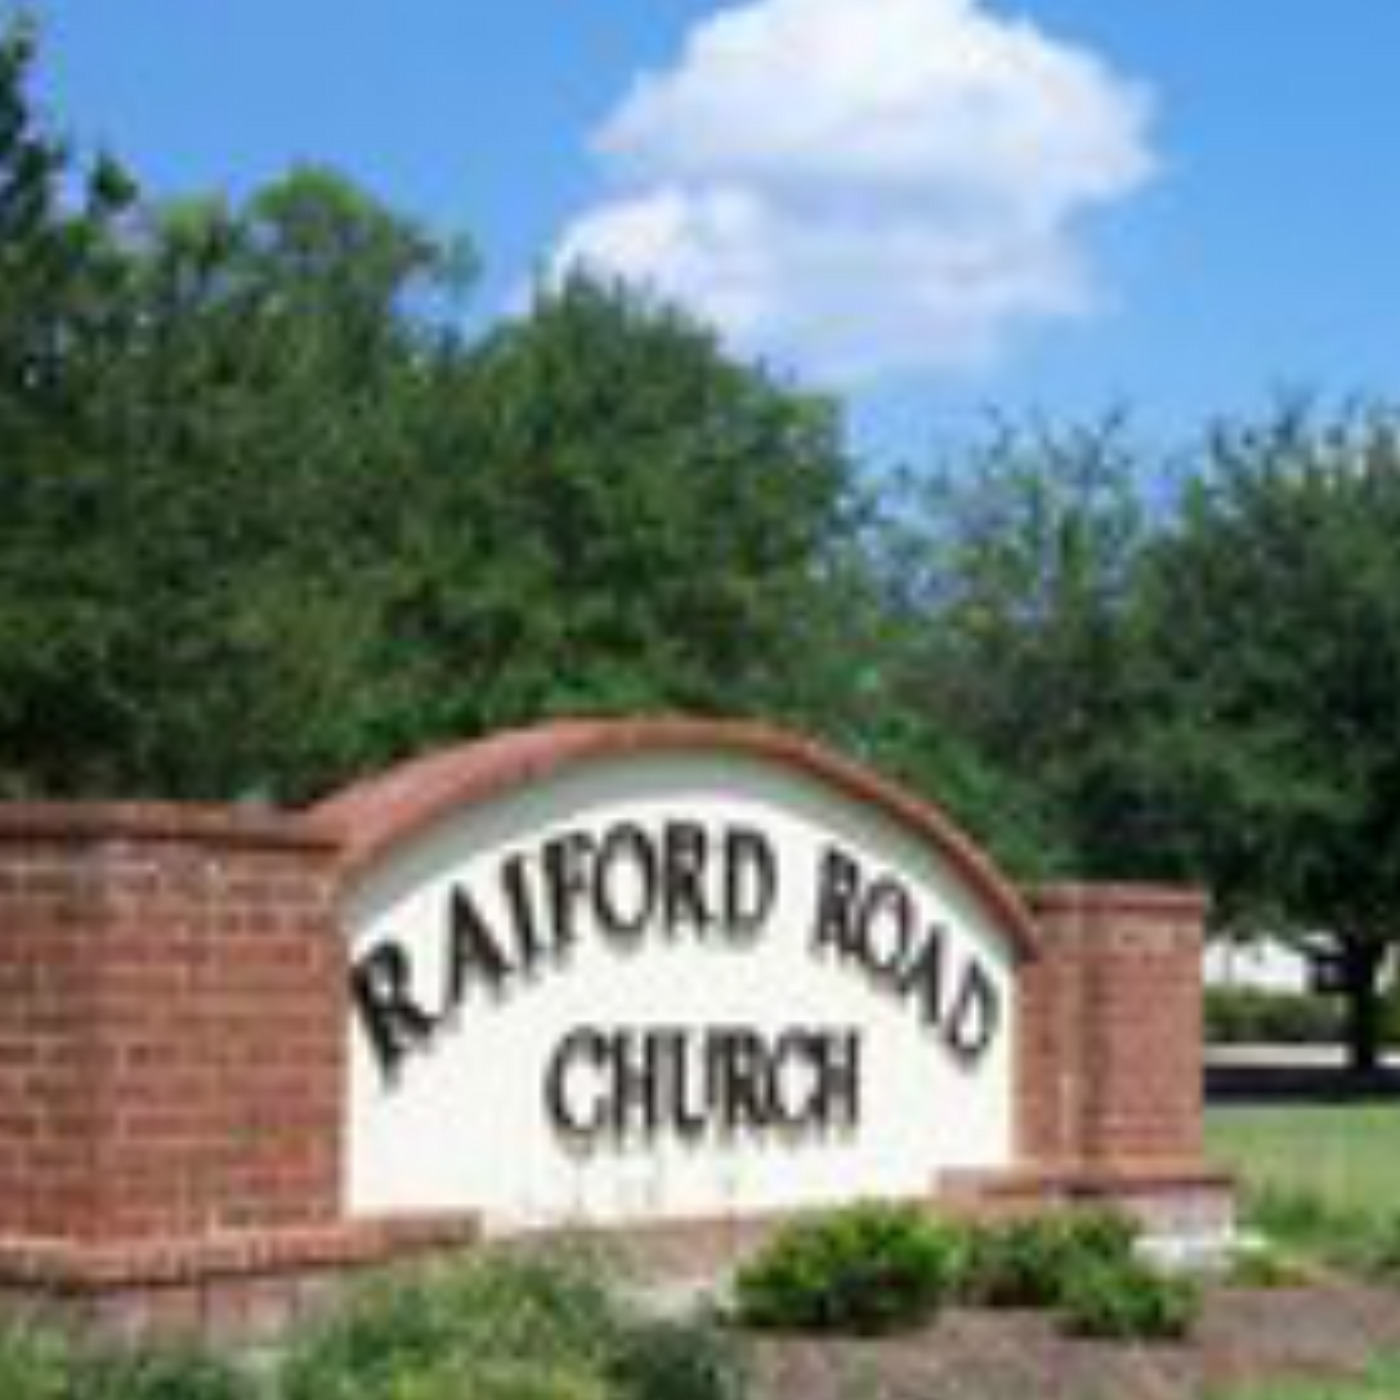 Raiford Road Church Sermons